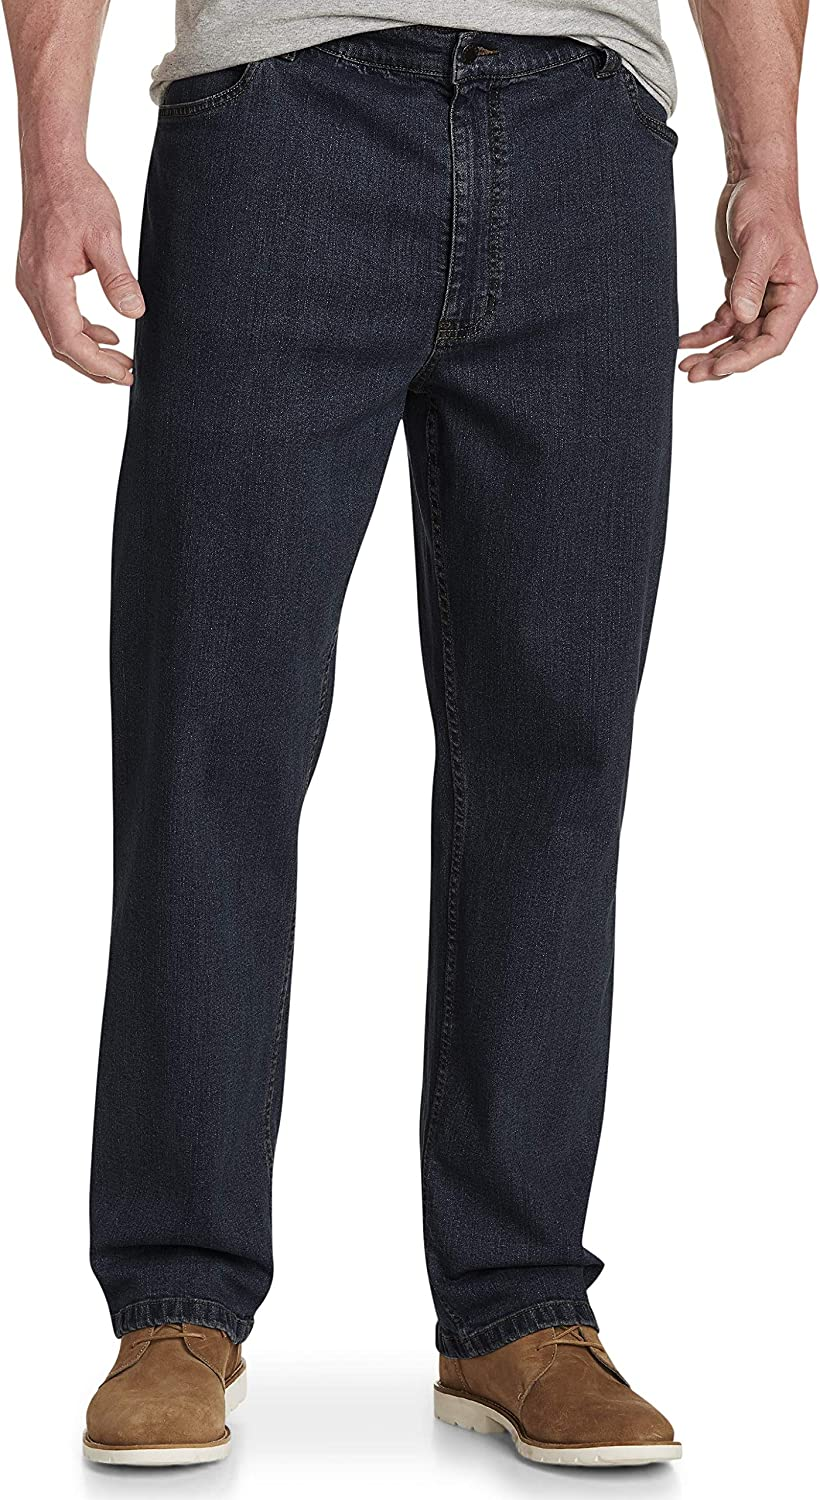 Harbor Bay by DXL Big and Tall Athletic-Fit Jeans